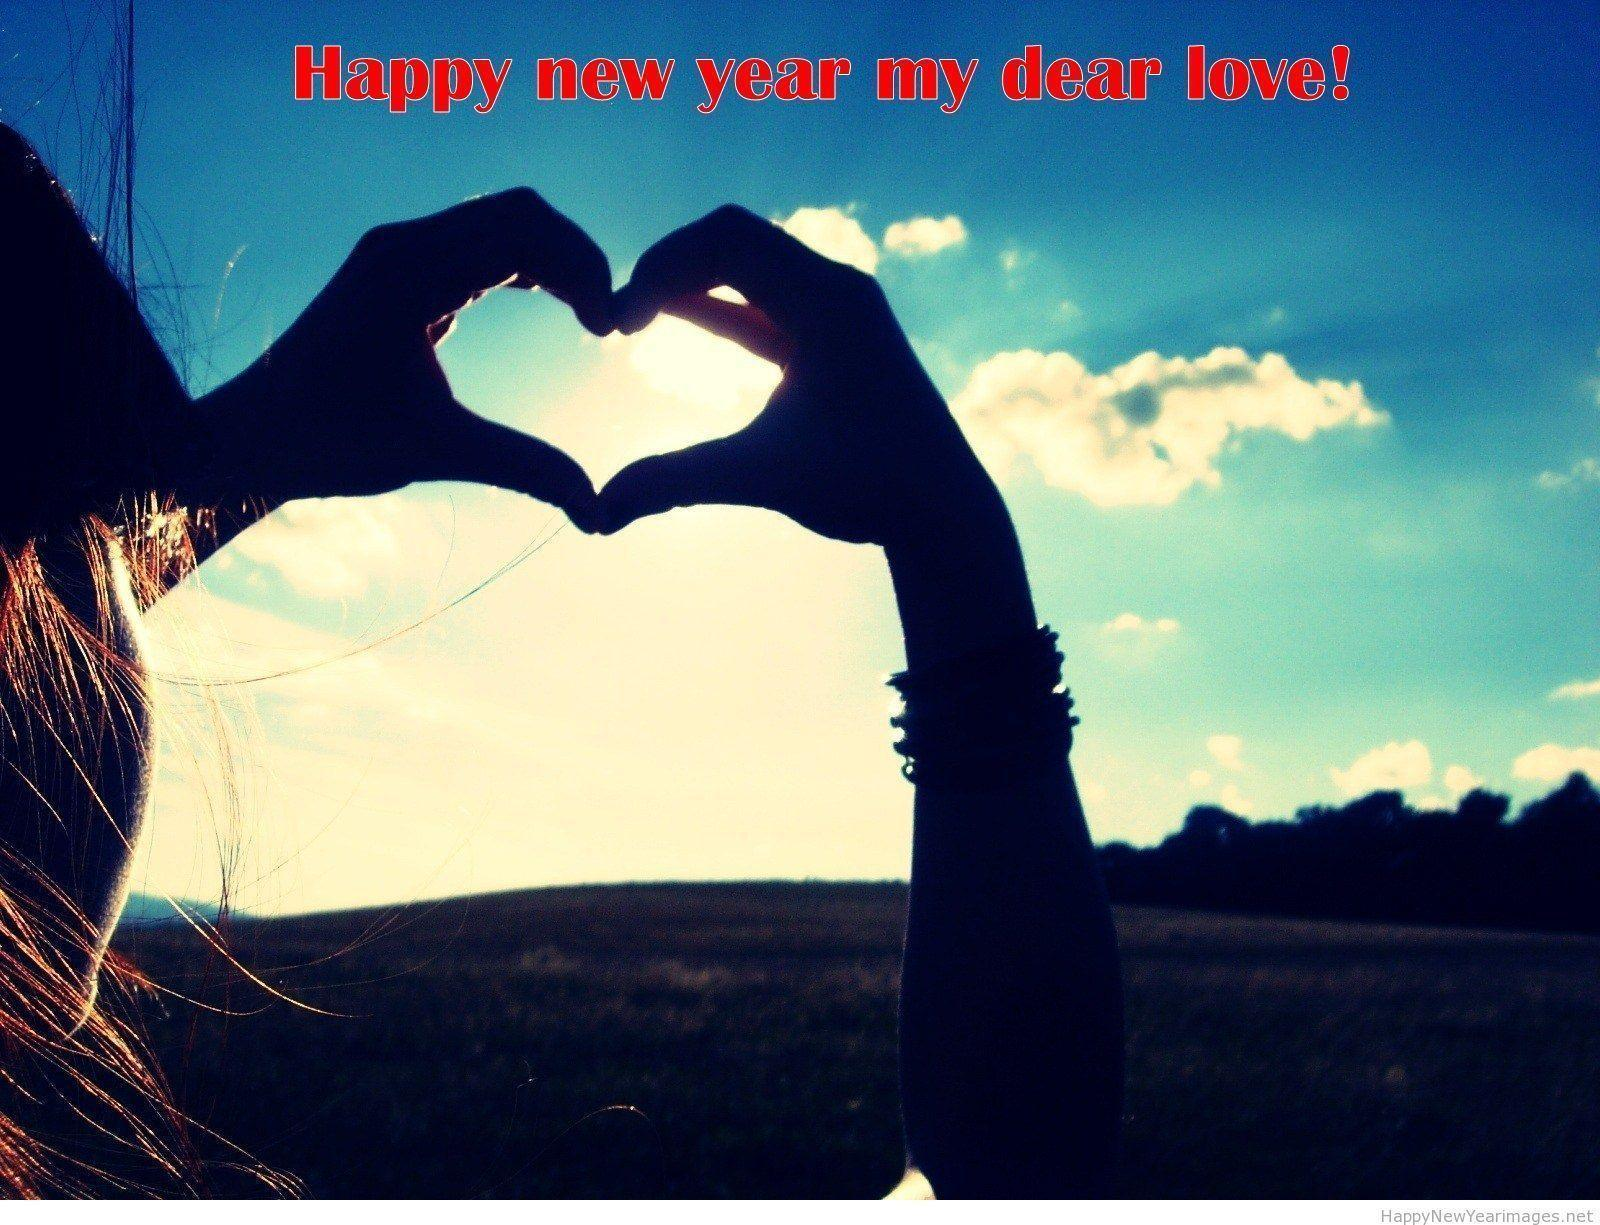 Love hands wallpapers Happy new year 2015